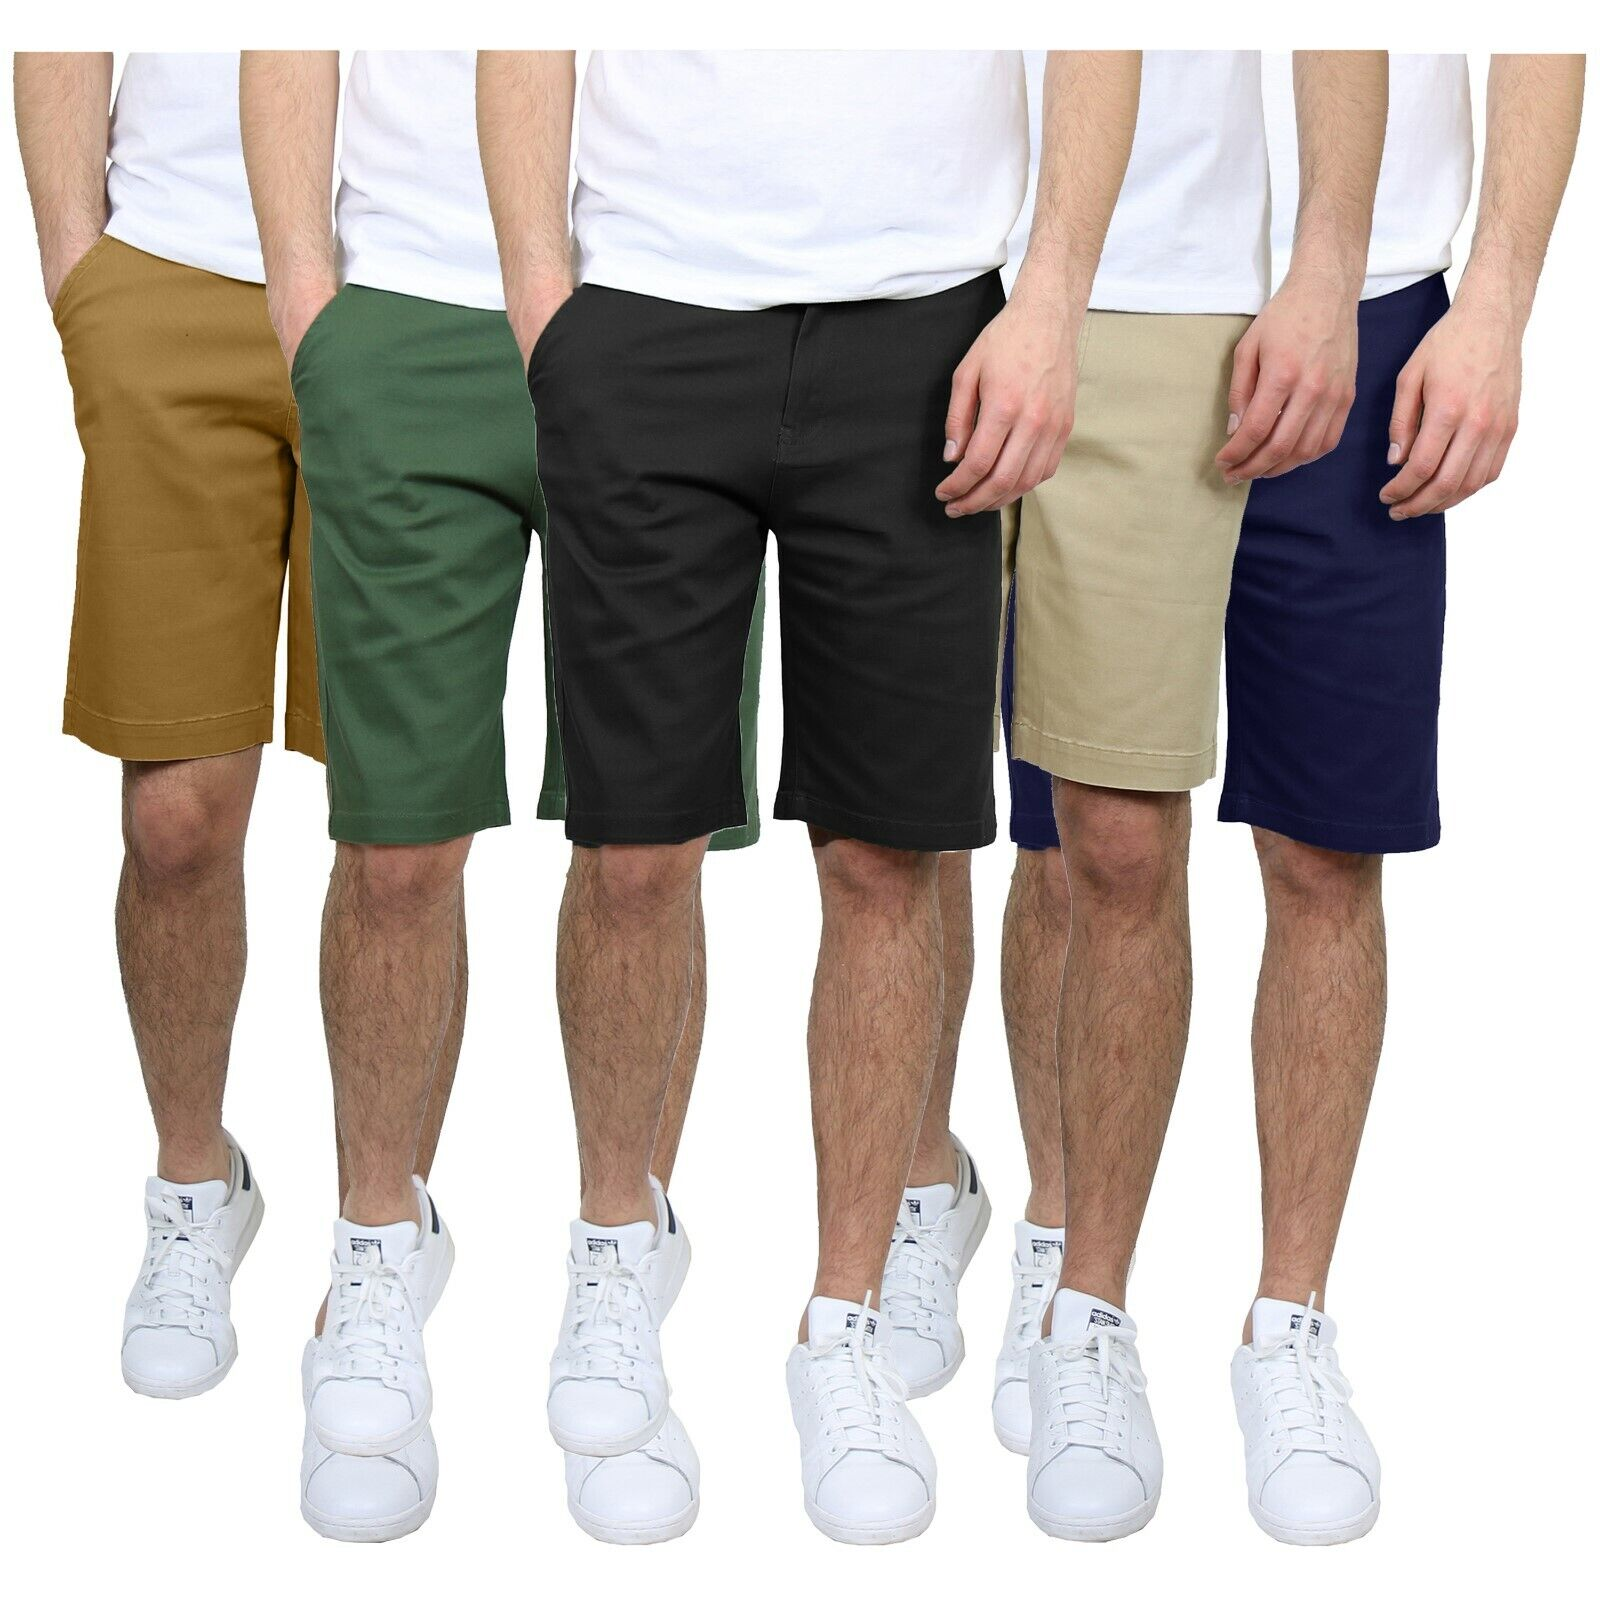 3-Pack Mens Stretch Chino Shorts Flat Front 5 Pocket Summer Casual Slim Fit NEW Clothing, Shoes & Accessories